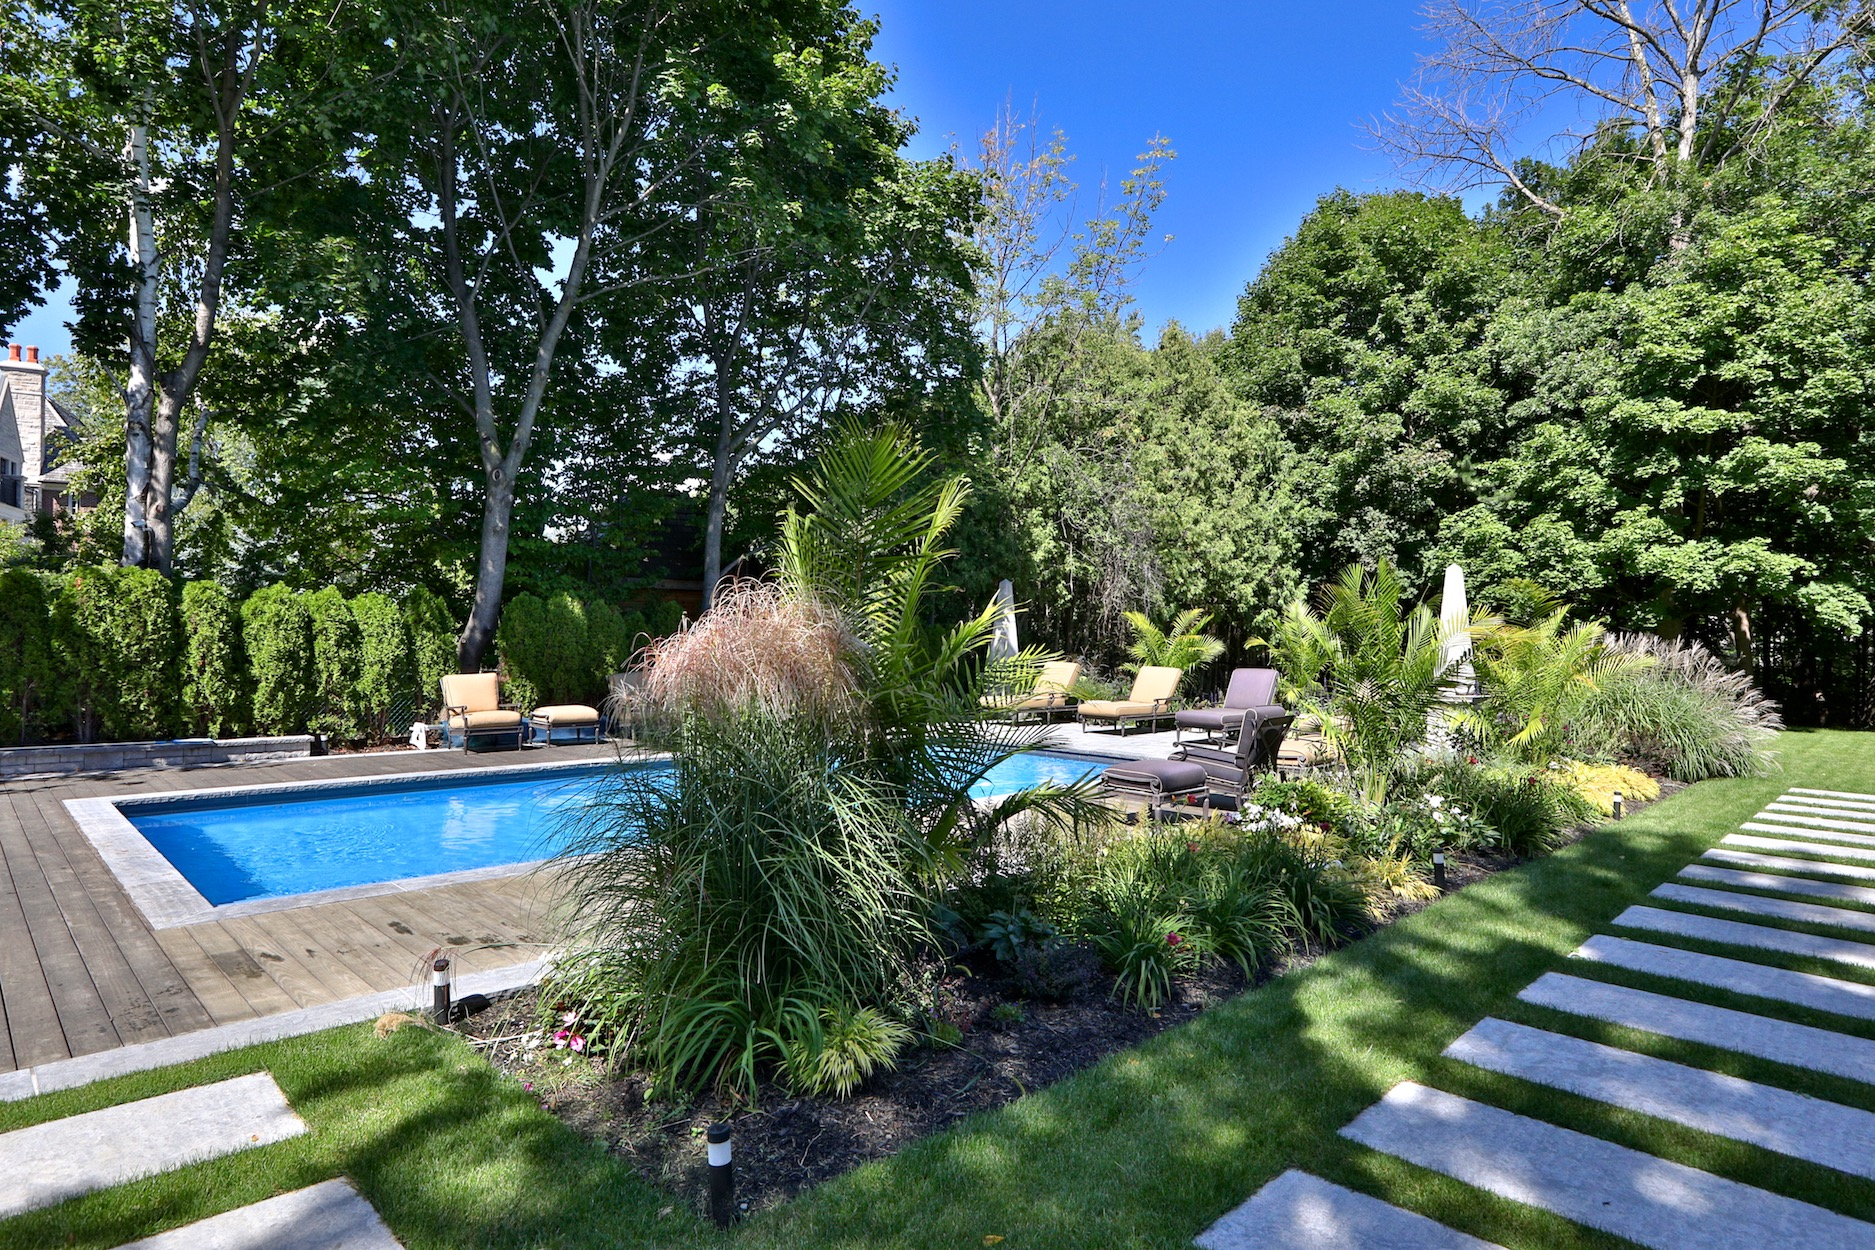 parkscape, landscaping, ipe decking, cedar hedge, stonework, pool, stepping stones, hydrangea, retaining wall, outdoor furniture